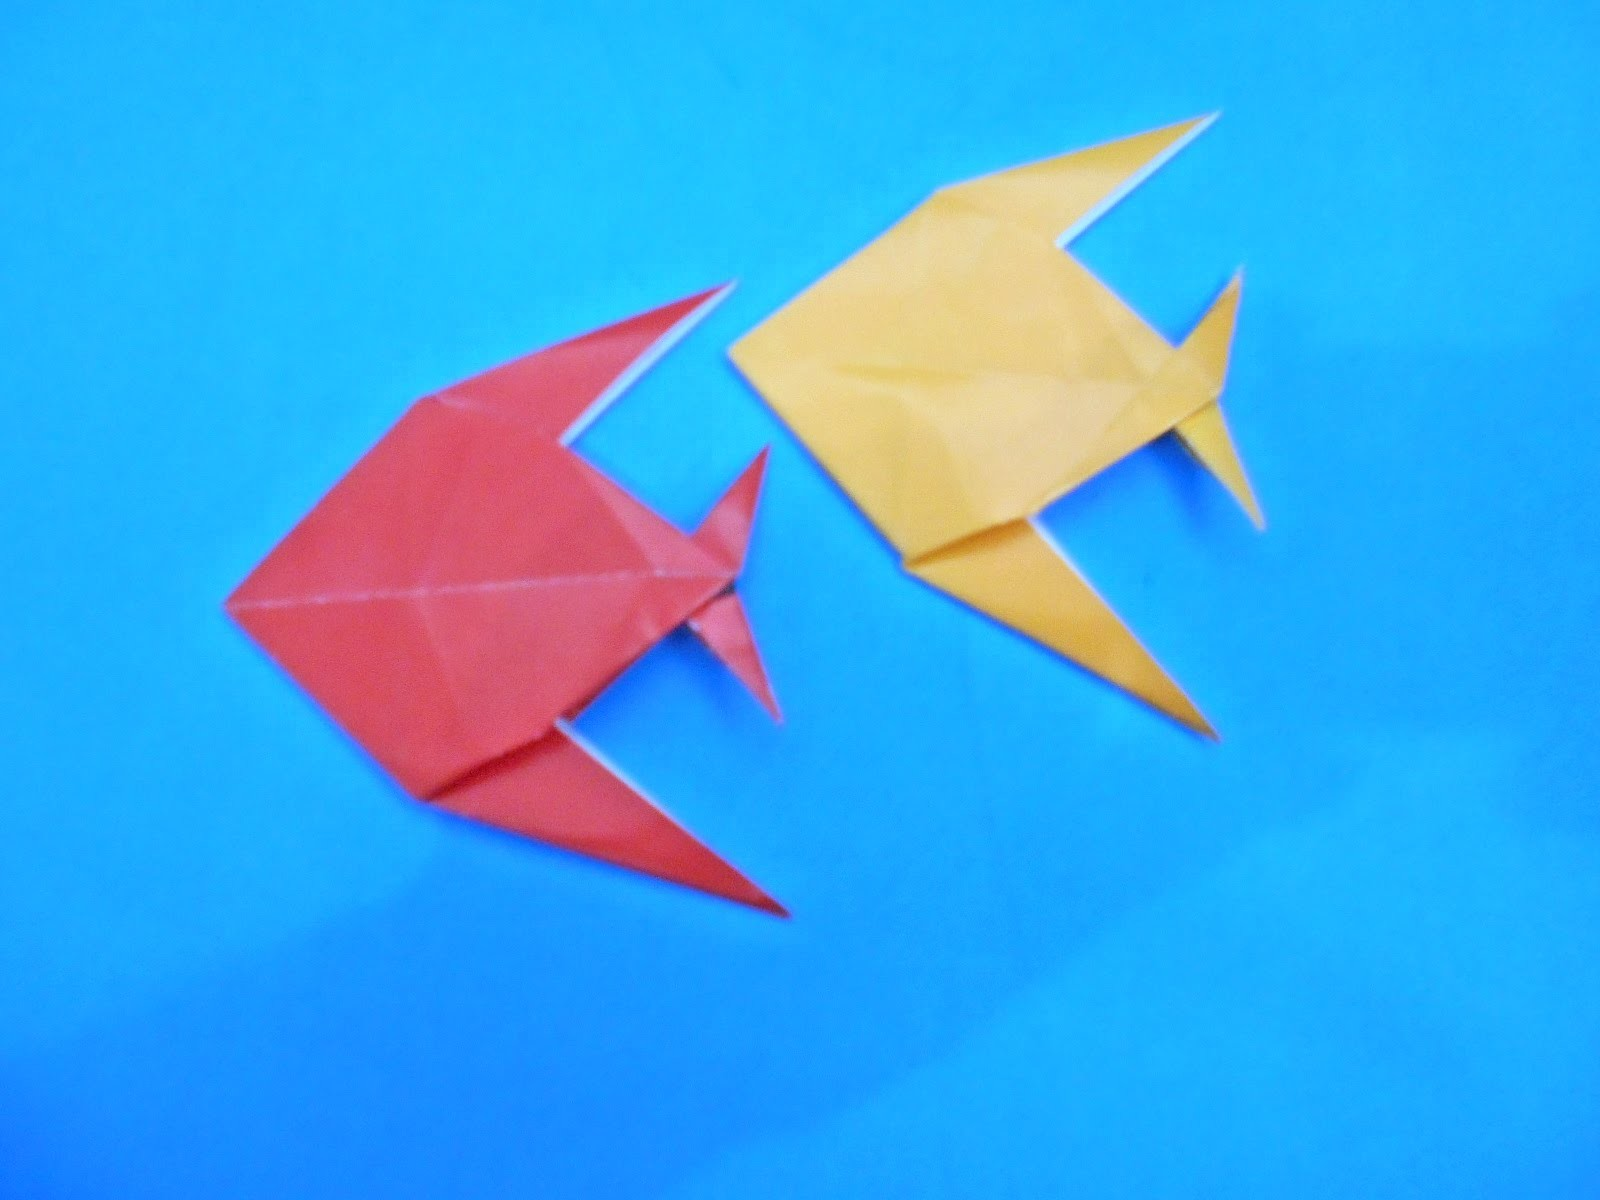 TUTORIAL ORIGAMI ANIMALS | How to fold an Easy origami ORNAMENTAL FISH INSTRUCTIONS